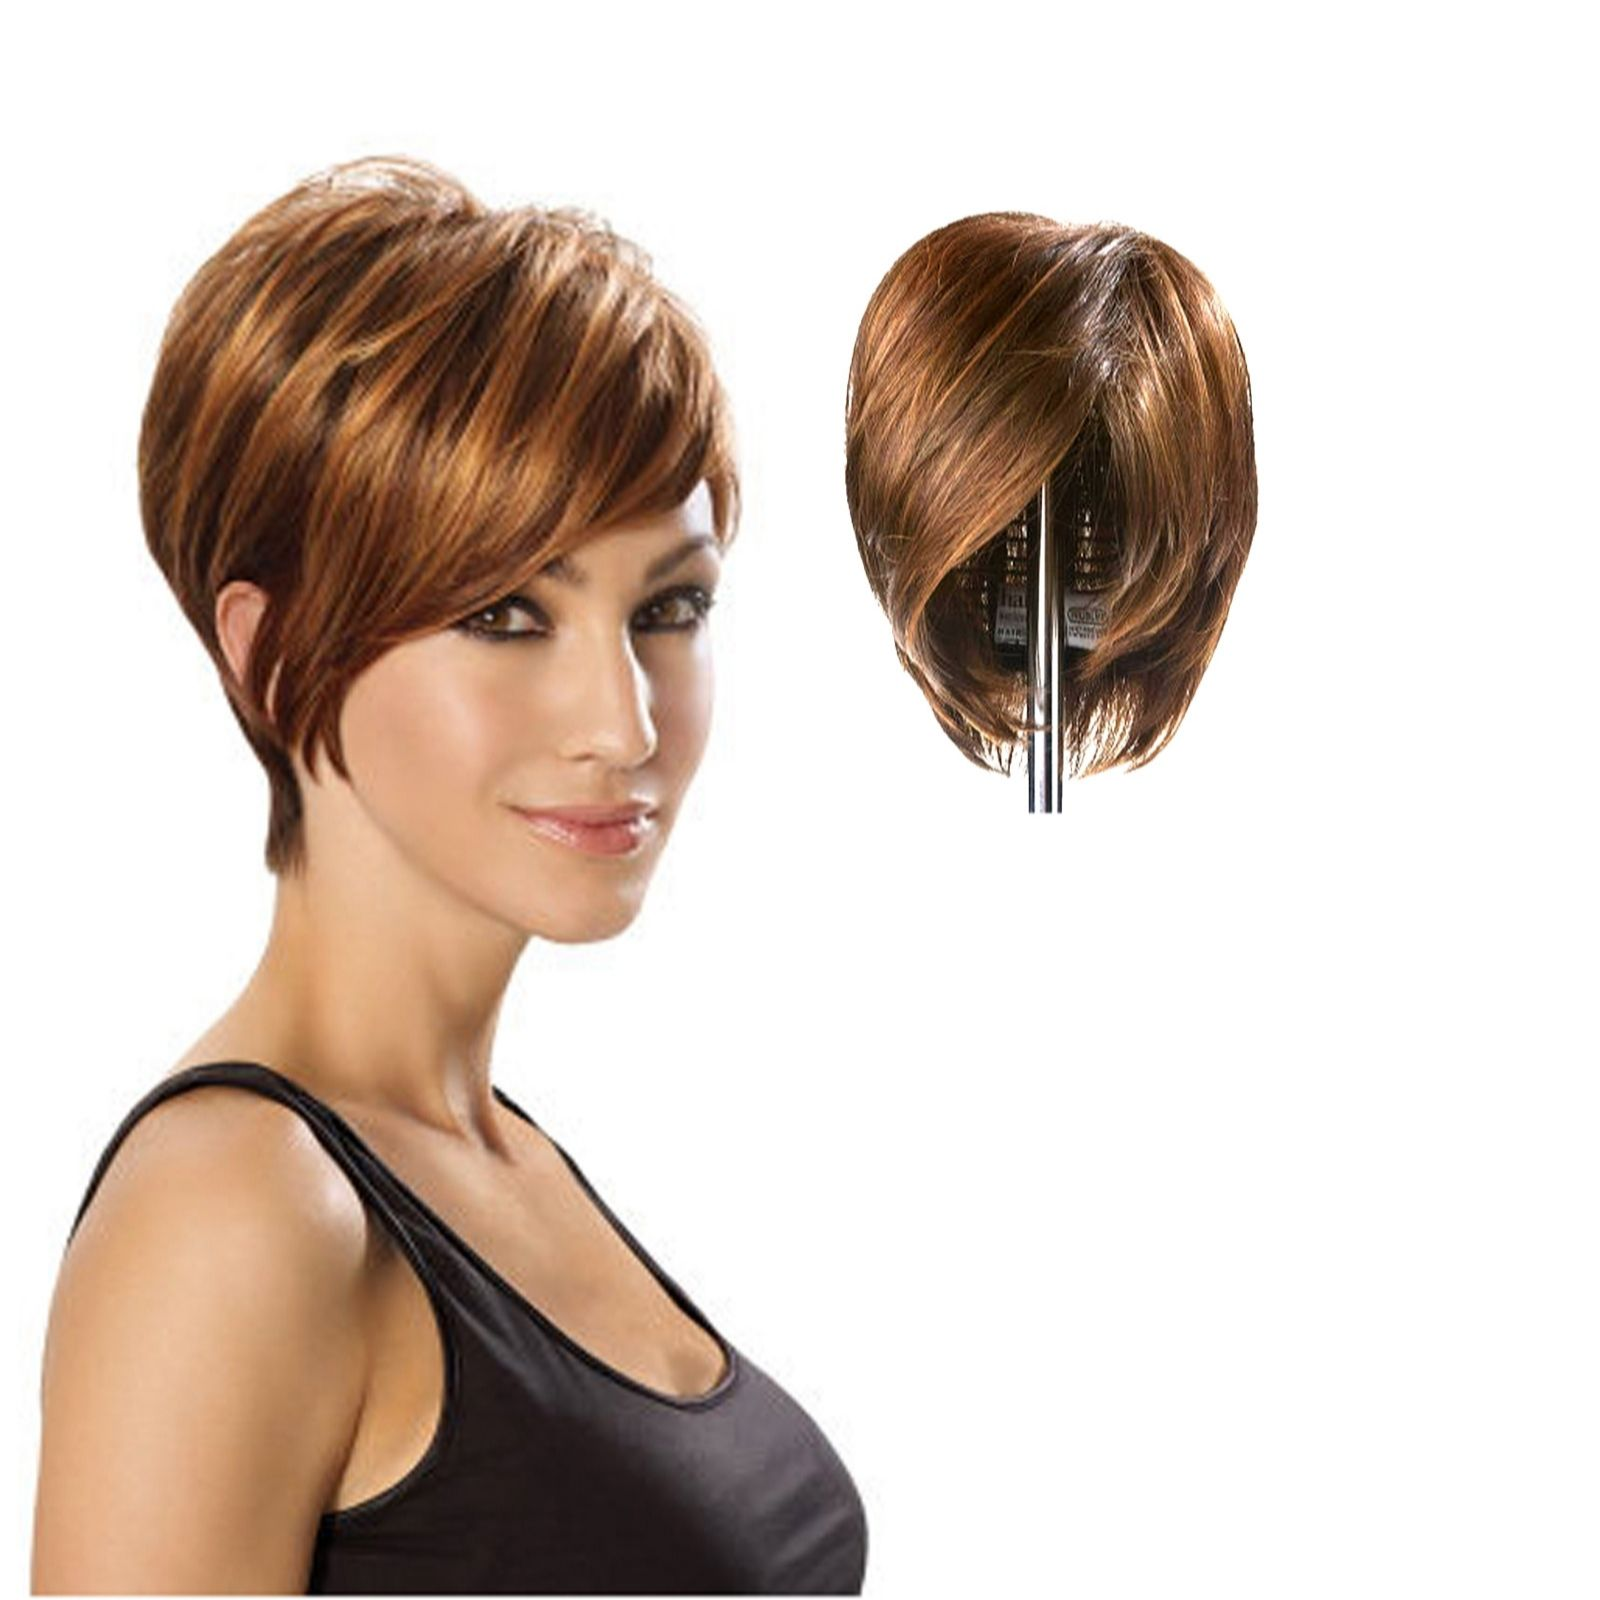 Hairdo By Hairuwear Wig And Wig Brush Page 1 Qvc Uk